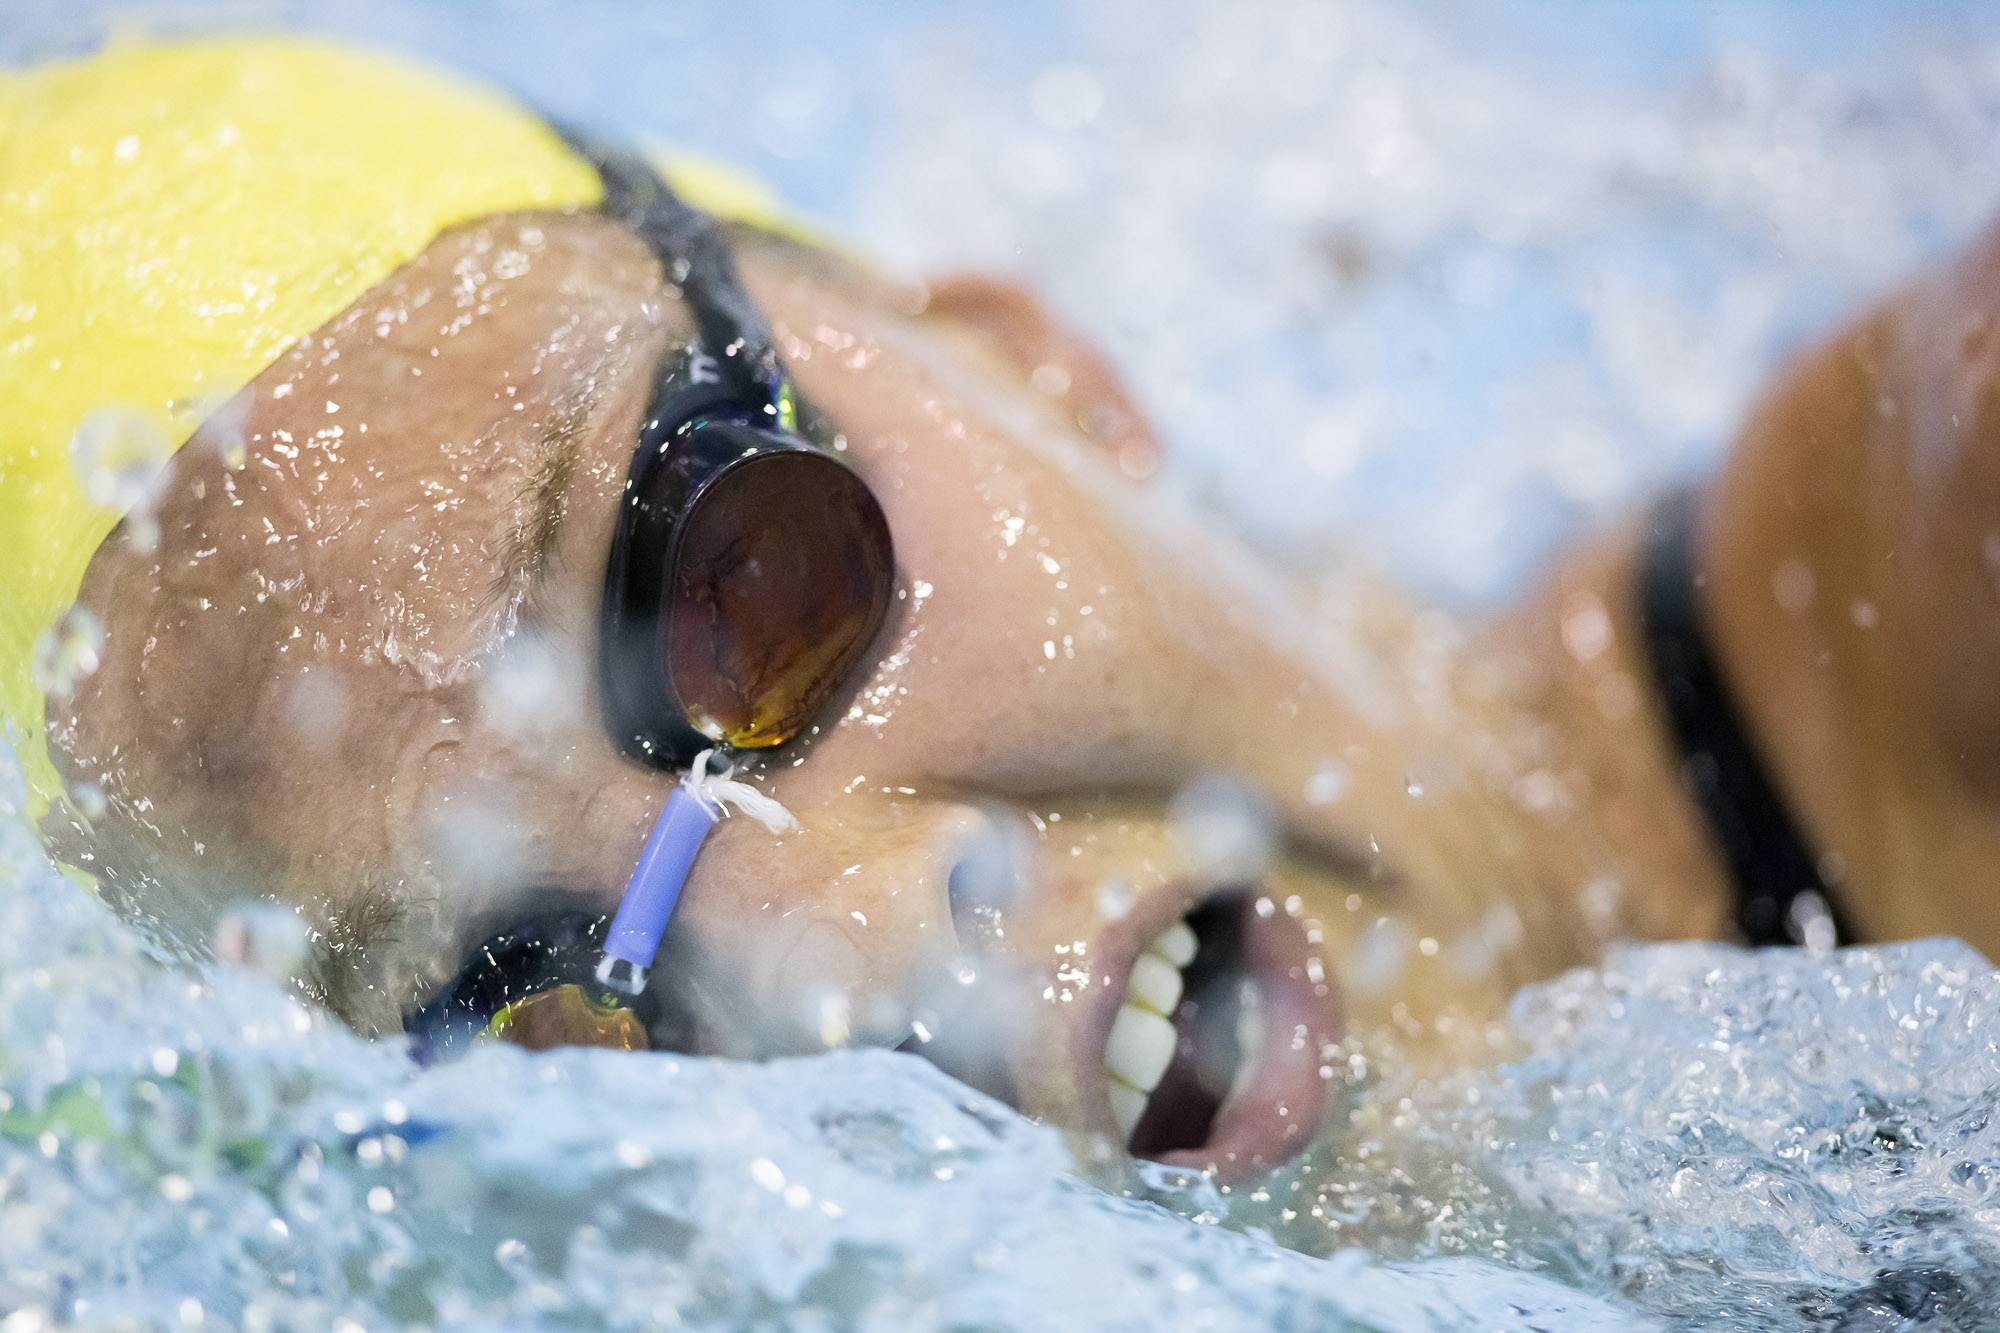 The Swimmer's Guide to Creating Awesome Habits